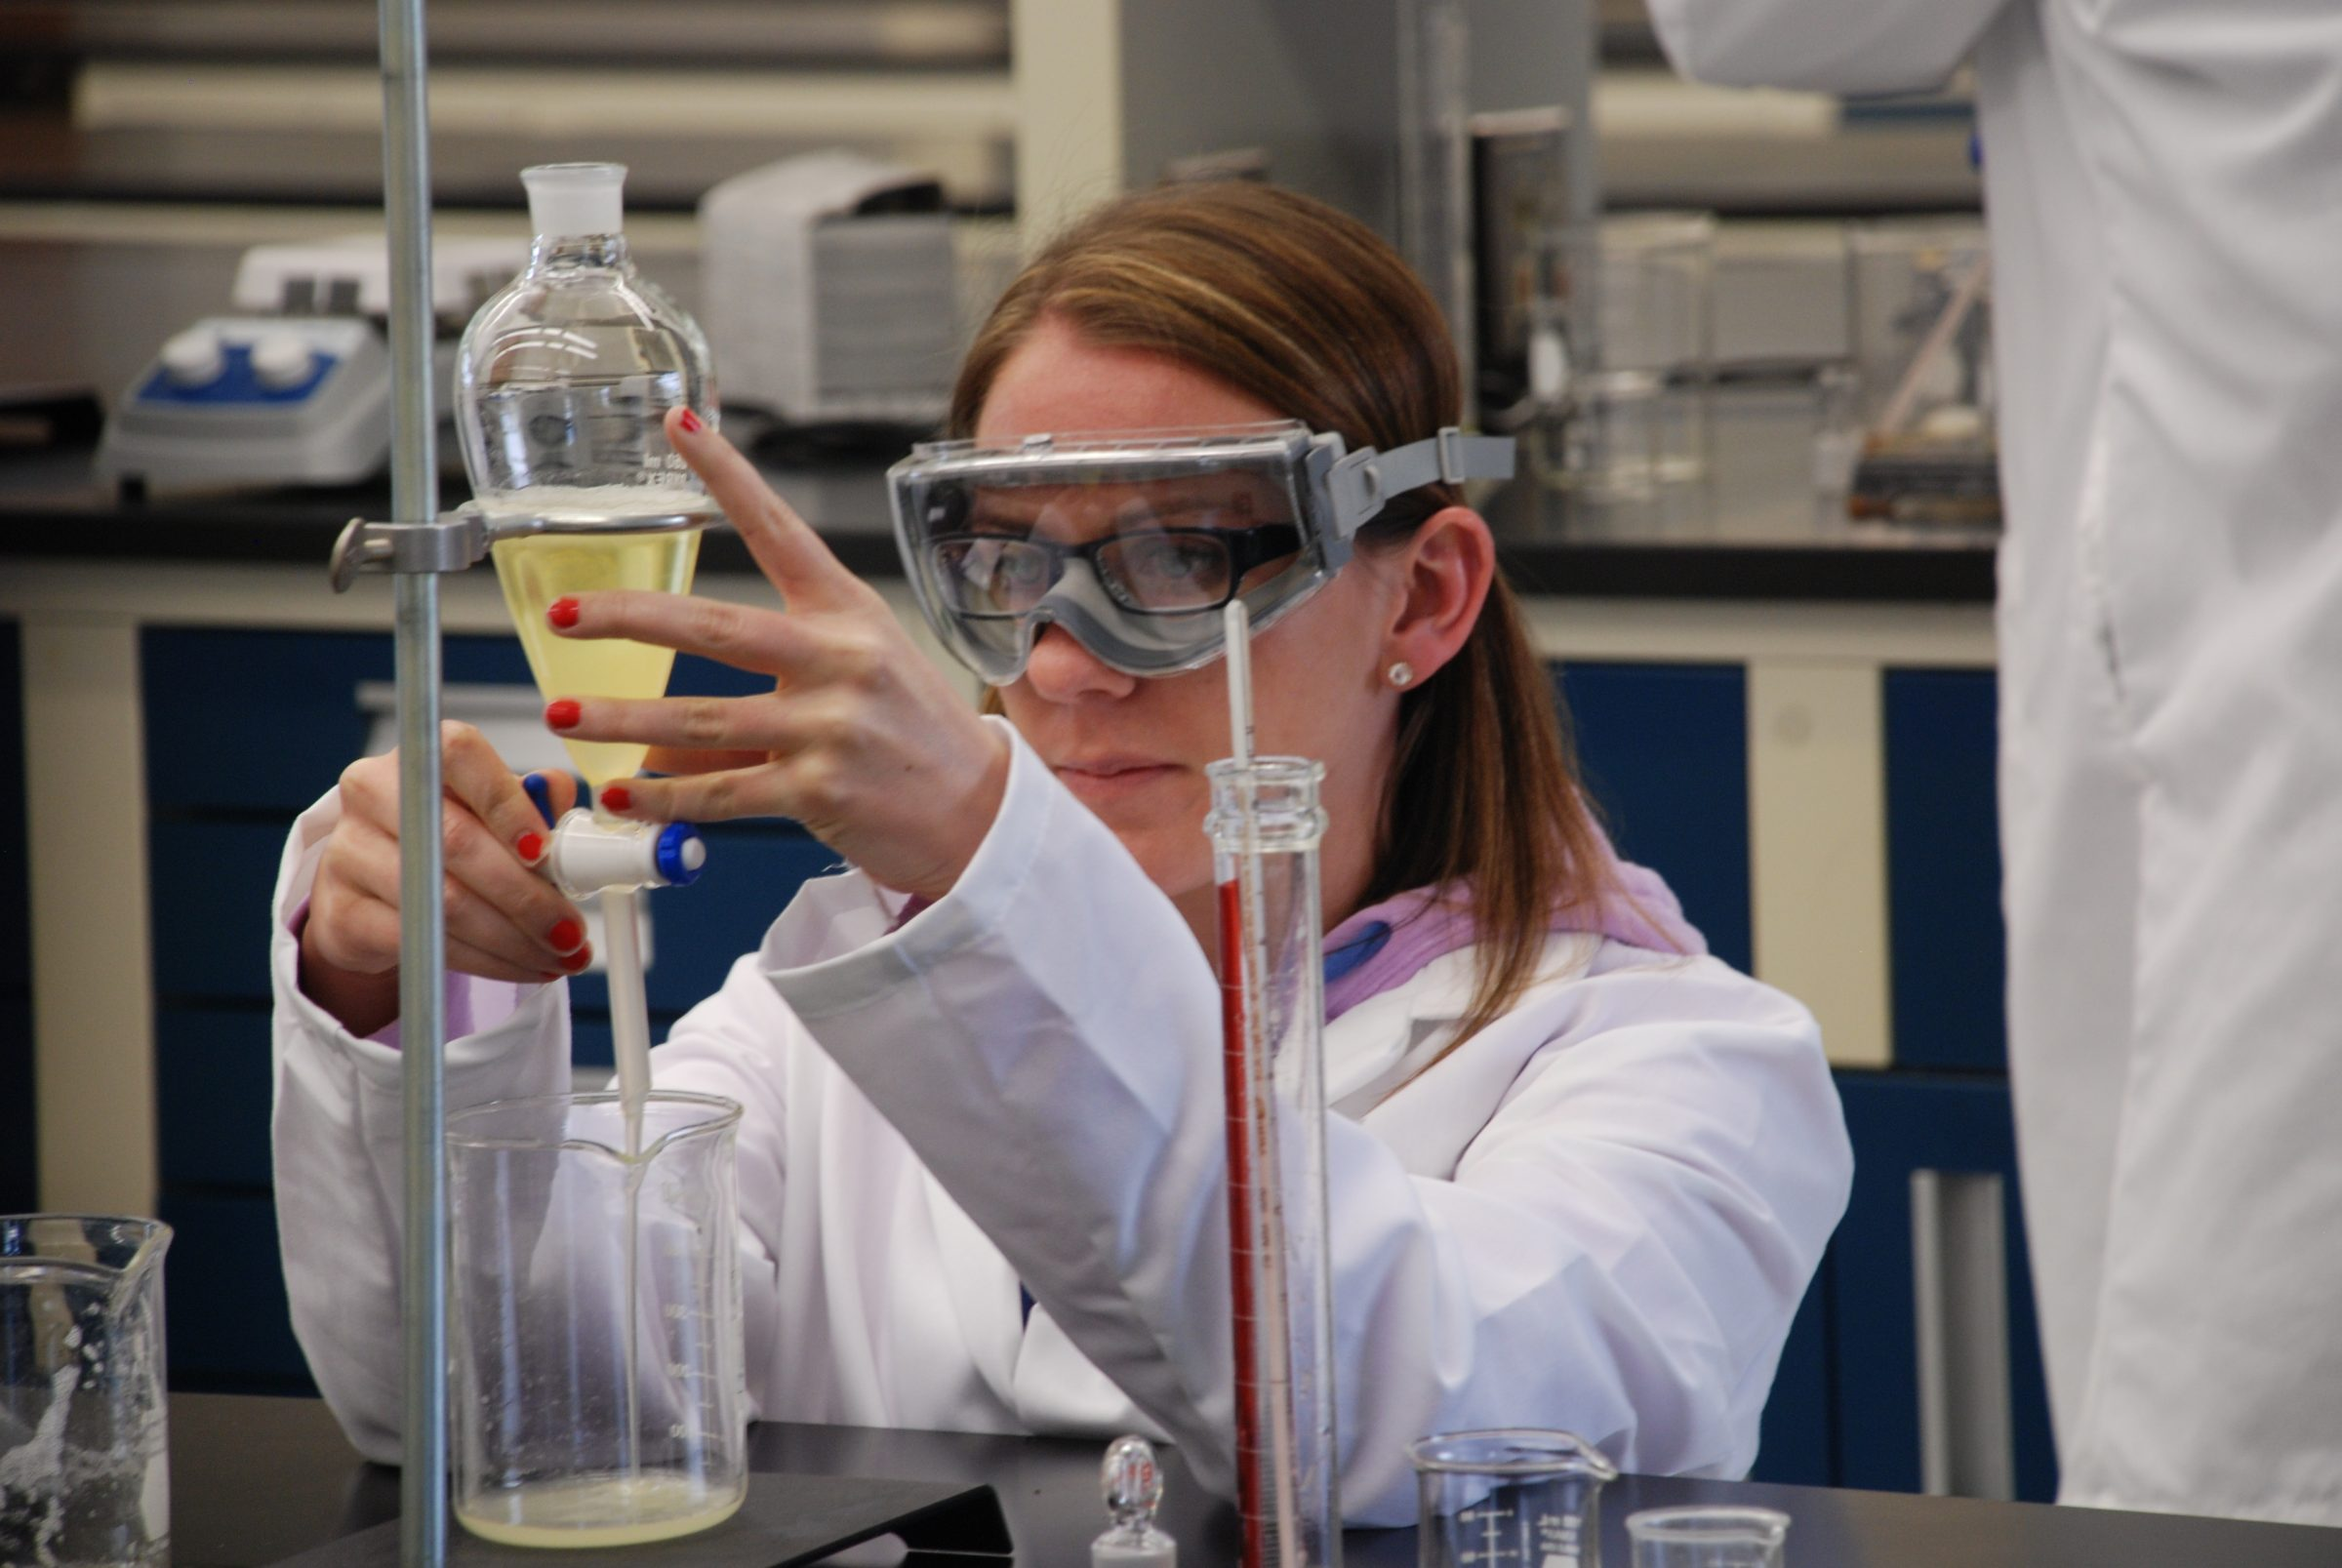 Woman working in a lab with chemicals on bench